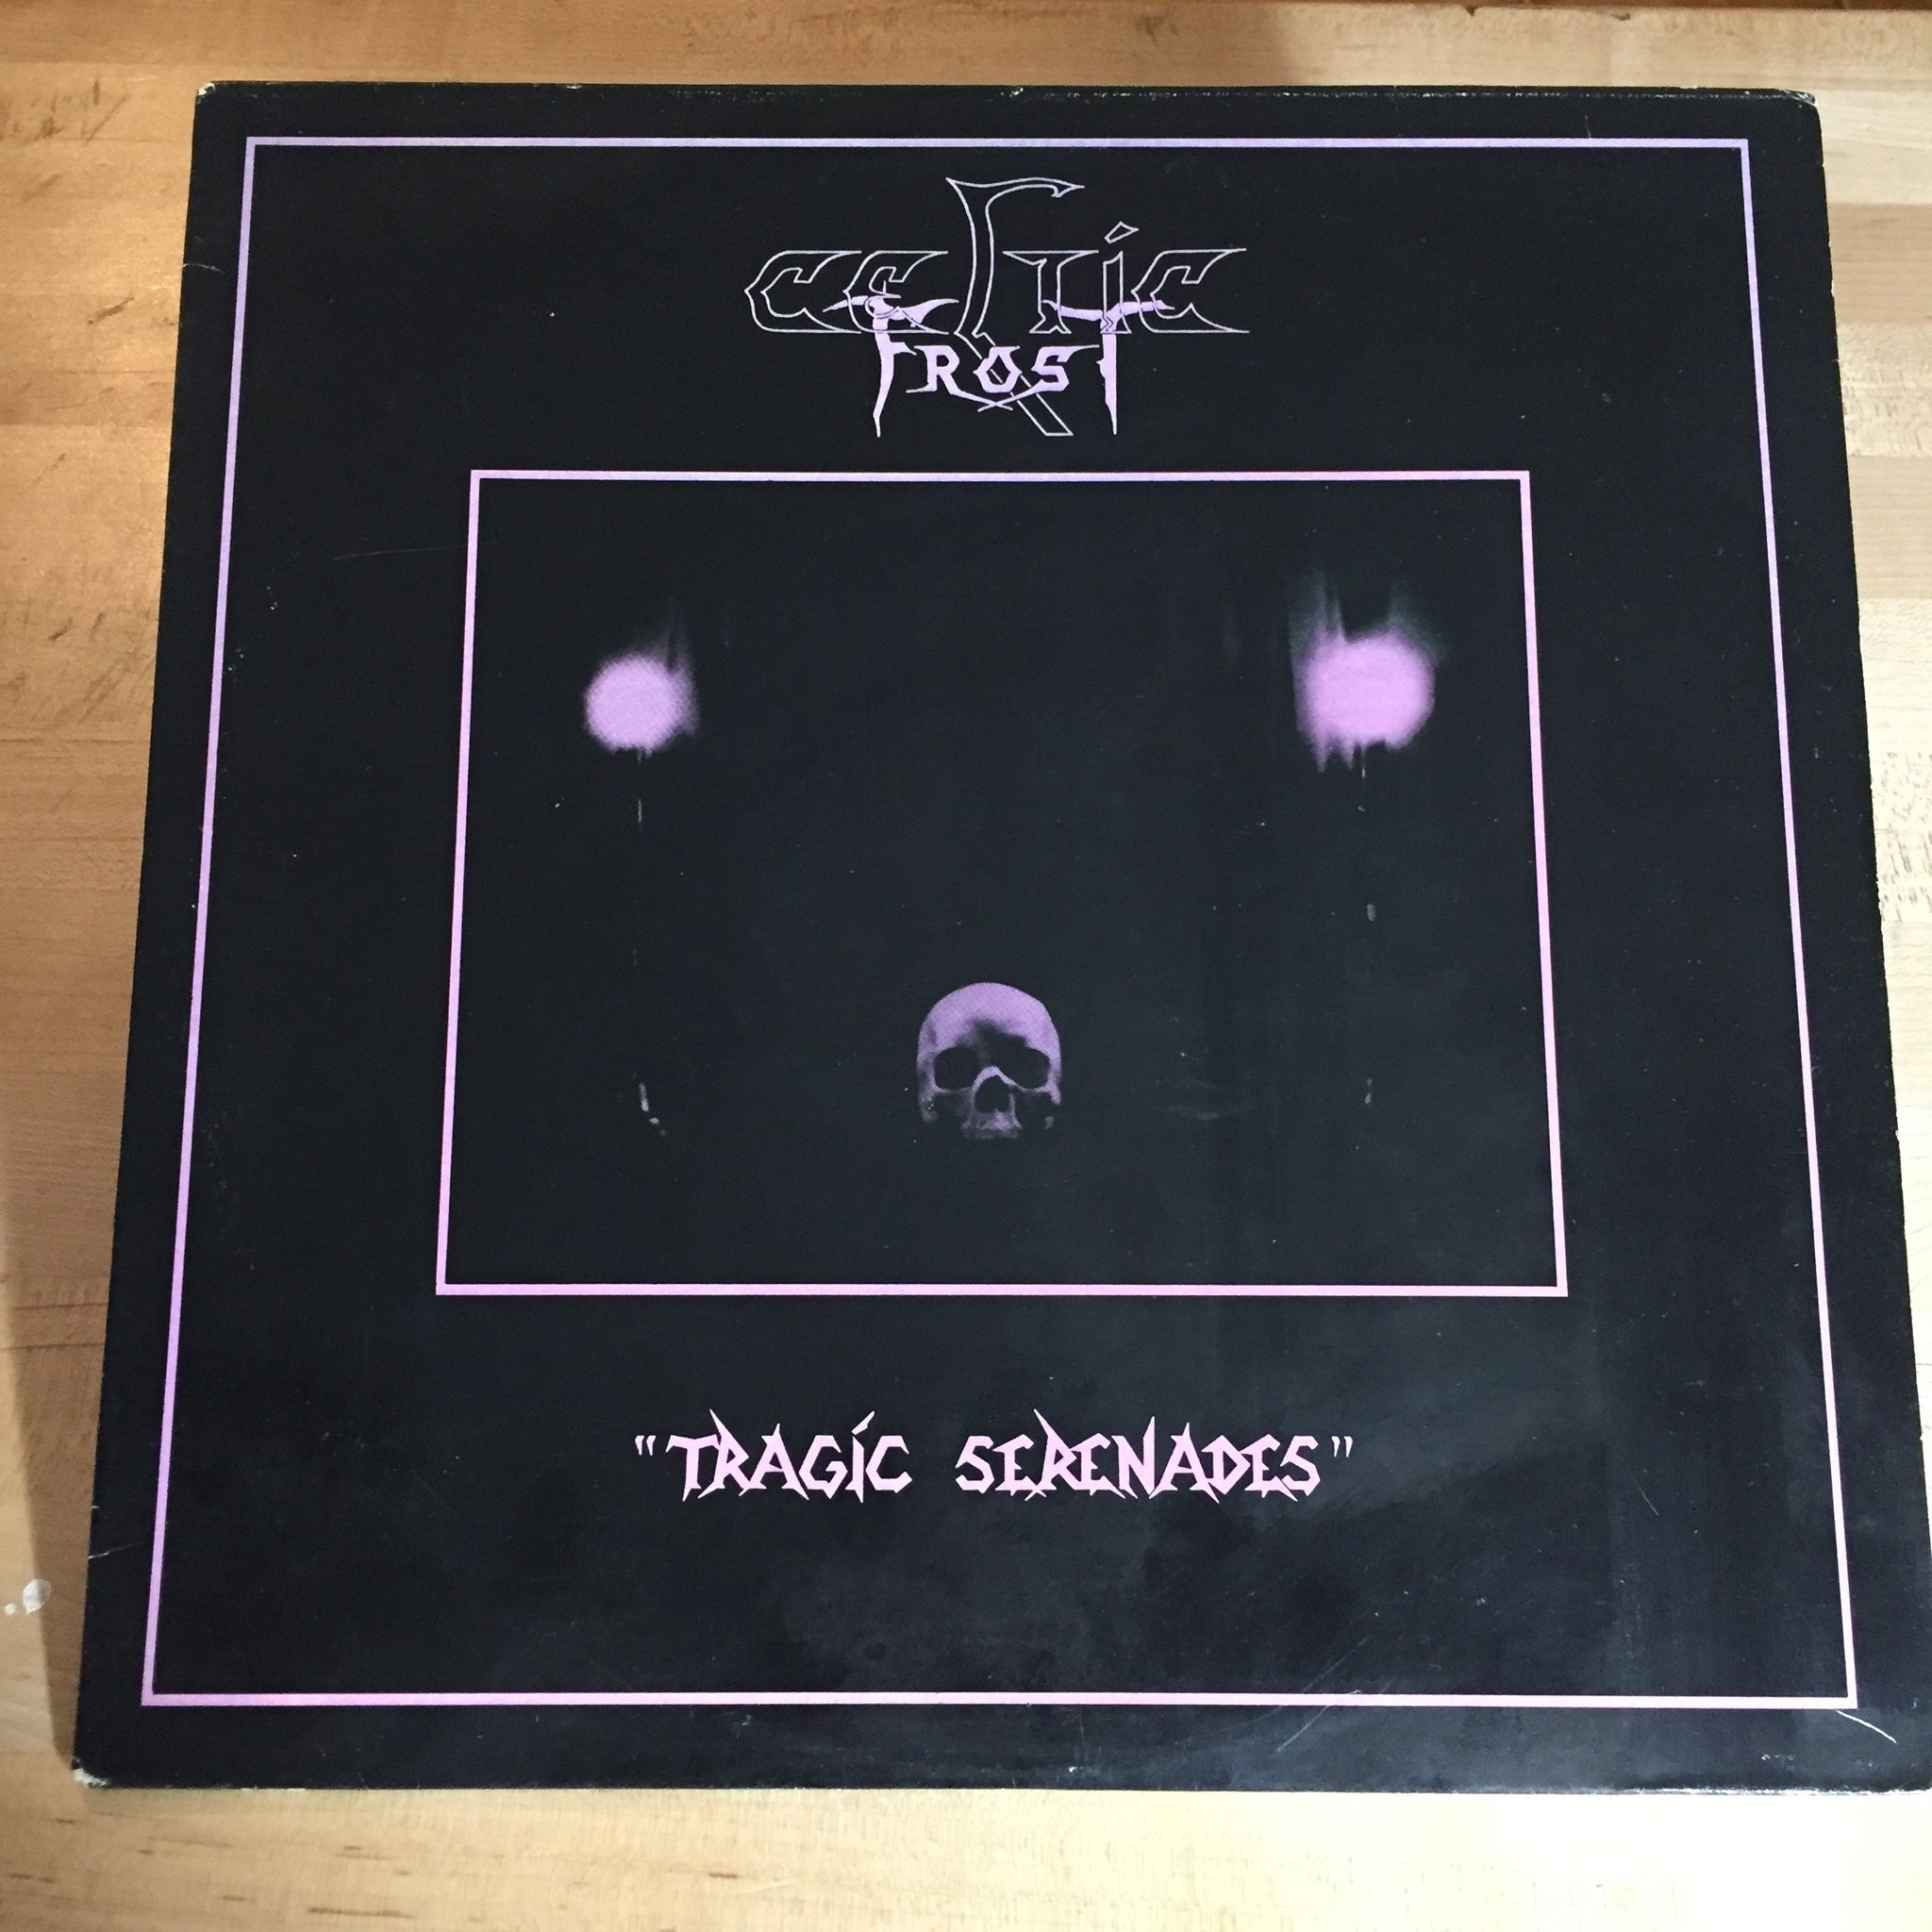 Celtic Frost - Tragic Serenades LP